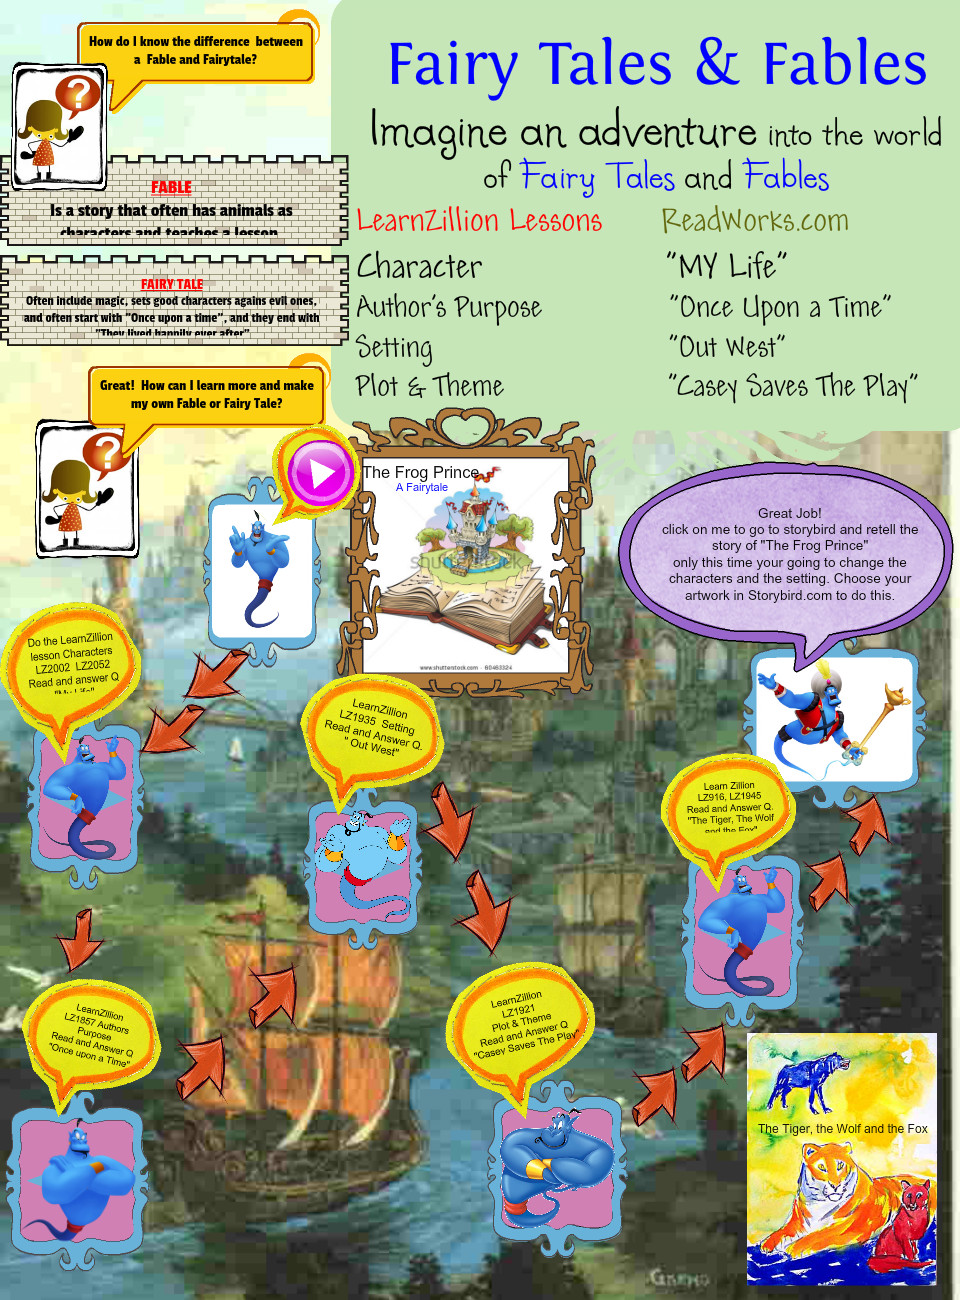 Fables & Fairytales lessons